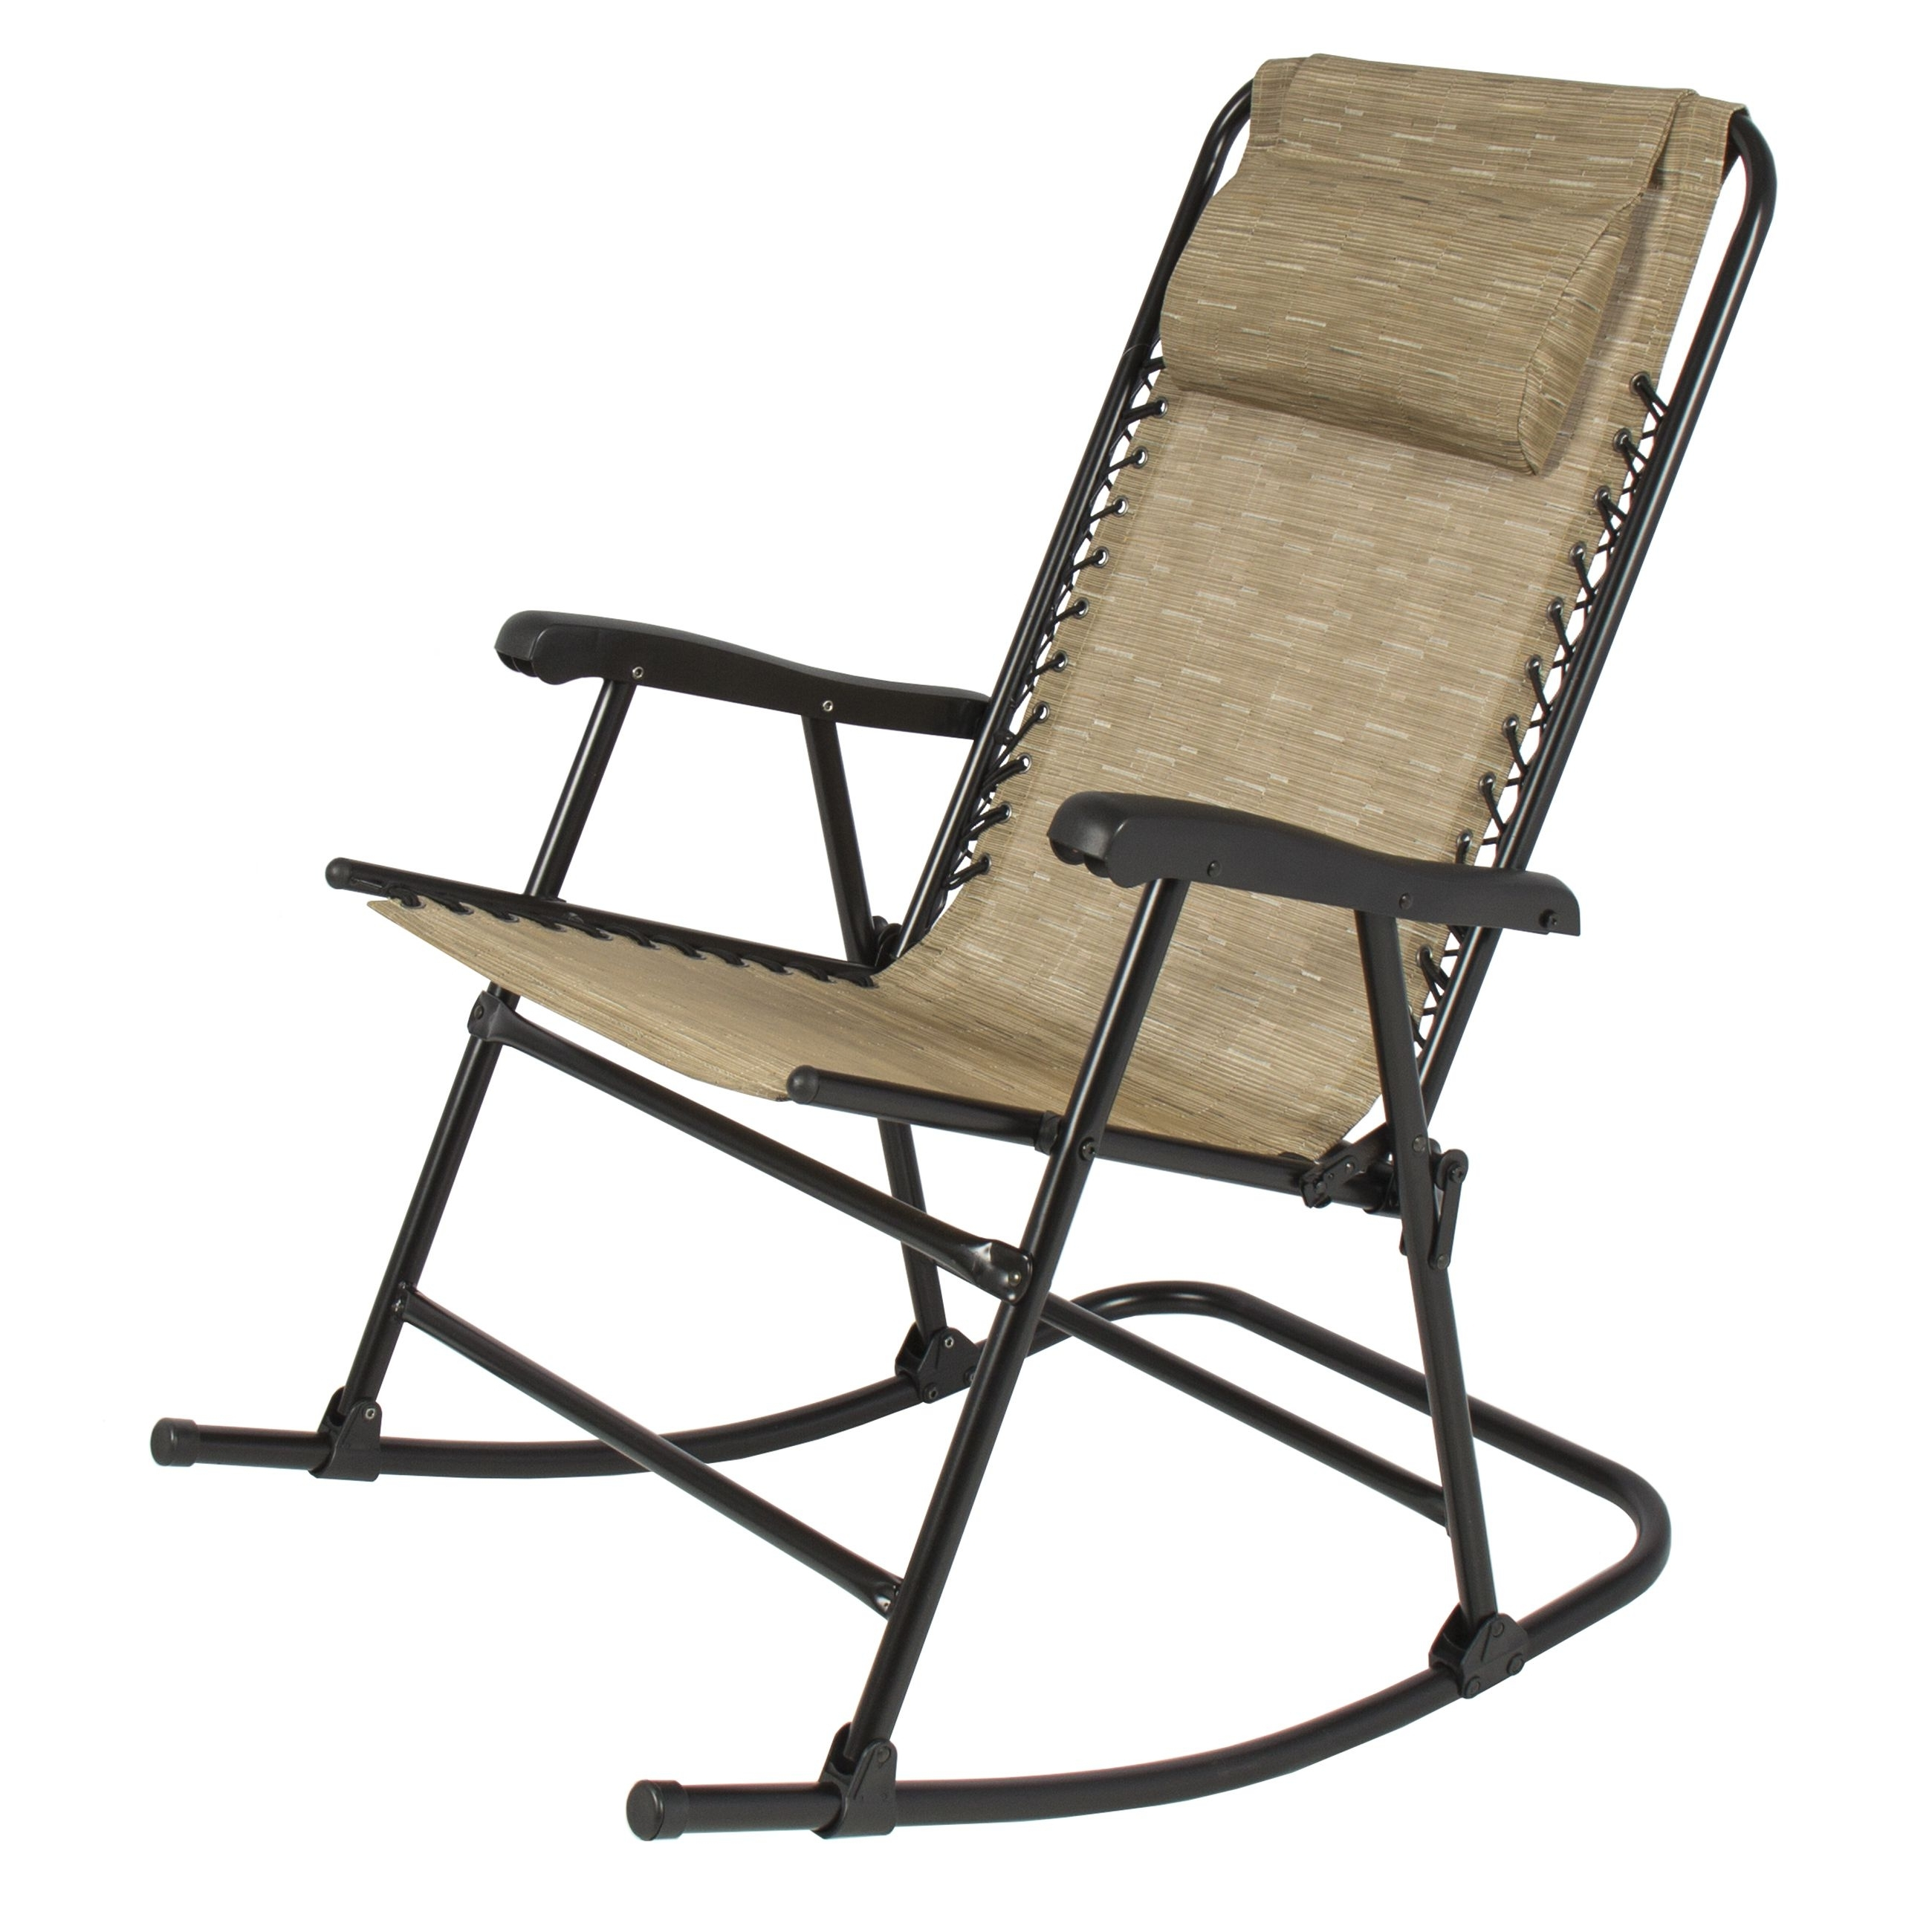 Folding Rocking Chair Foldable Rocker Outdoor Patio Furniture Beige Throughout Fashionable Rocking Chairs For Patio (View 5 of 15)